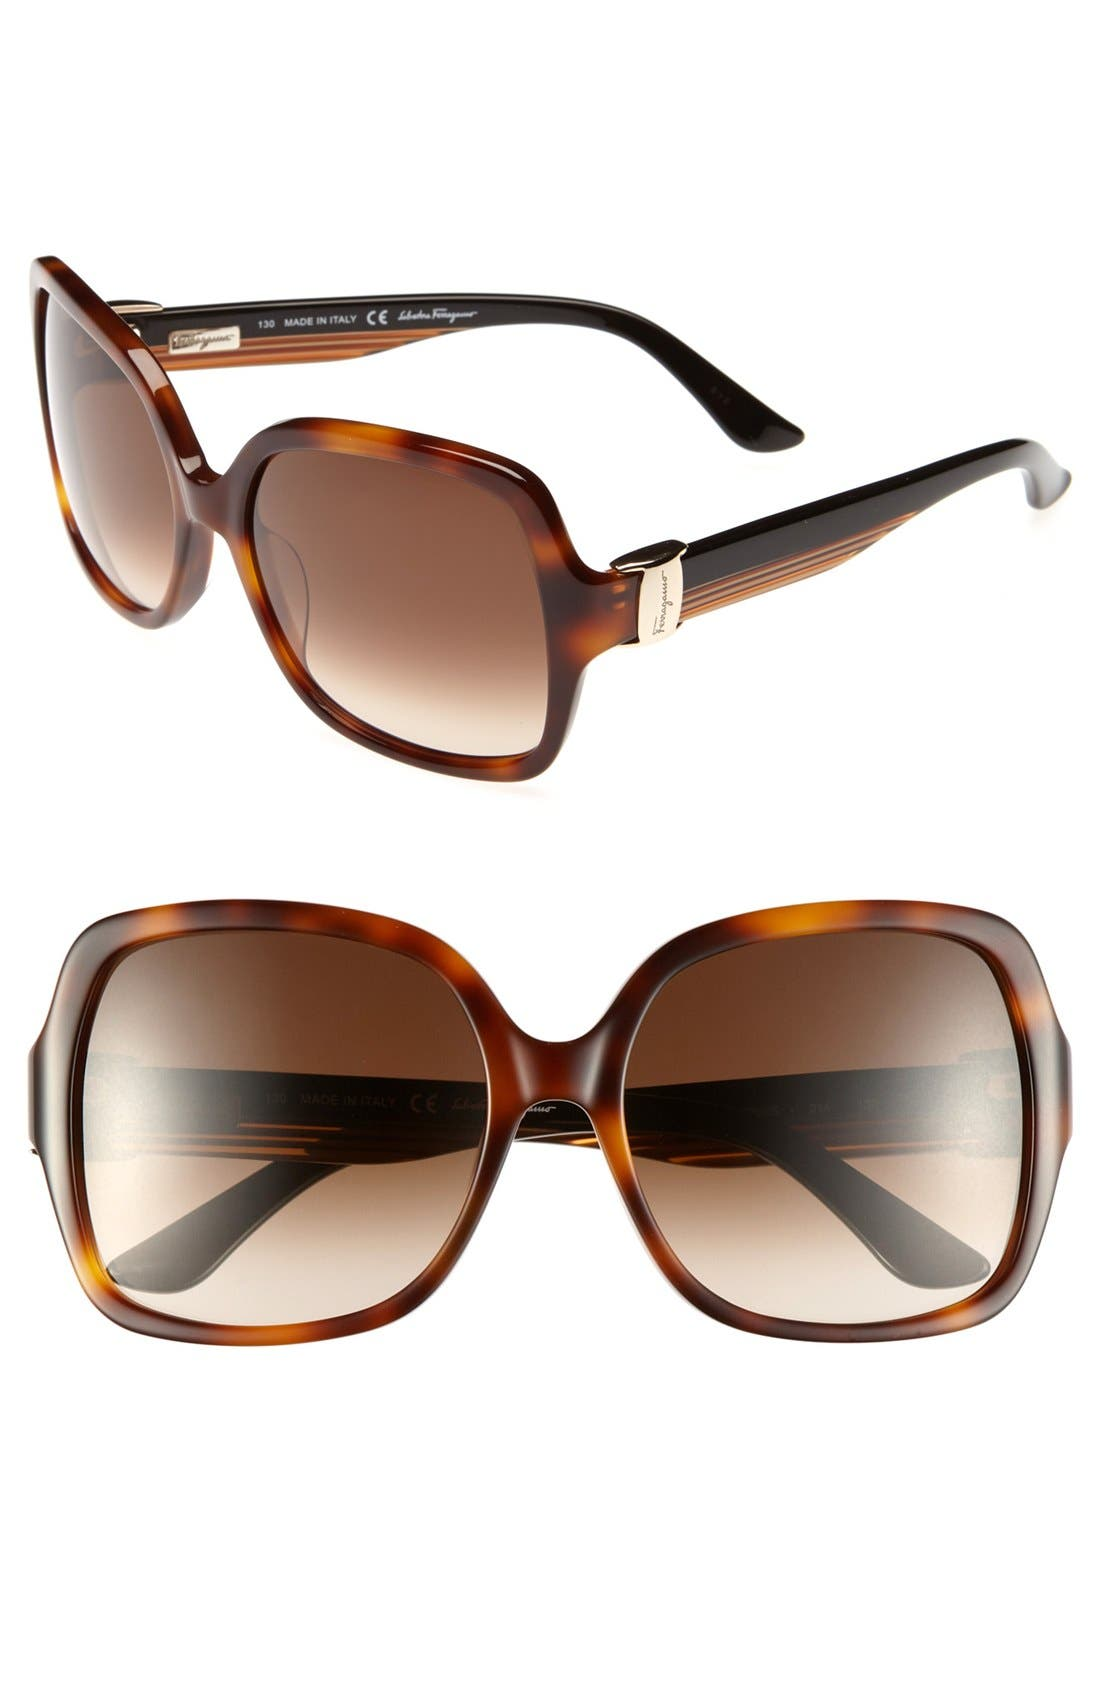 Main Image - Salvatore Ferragamo 56mm Oversized Sunglasses